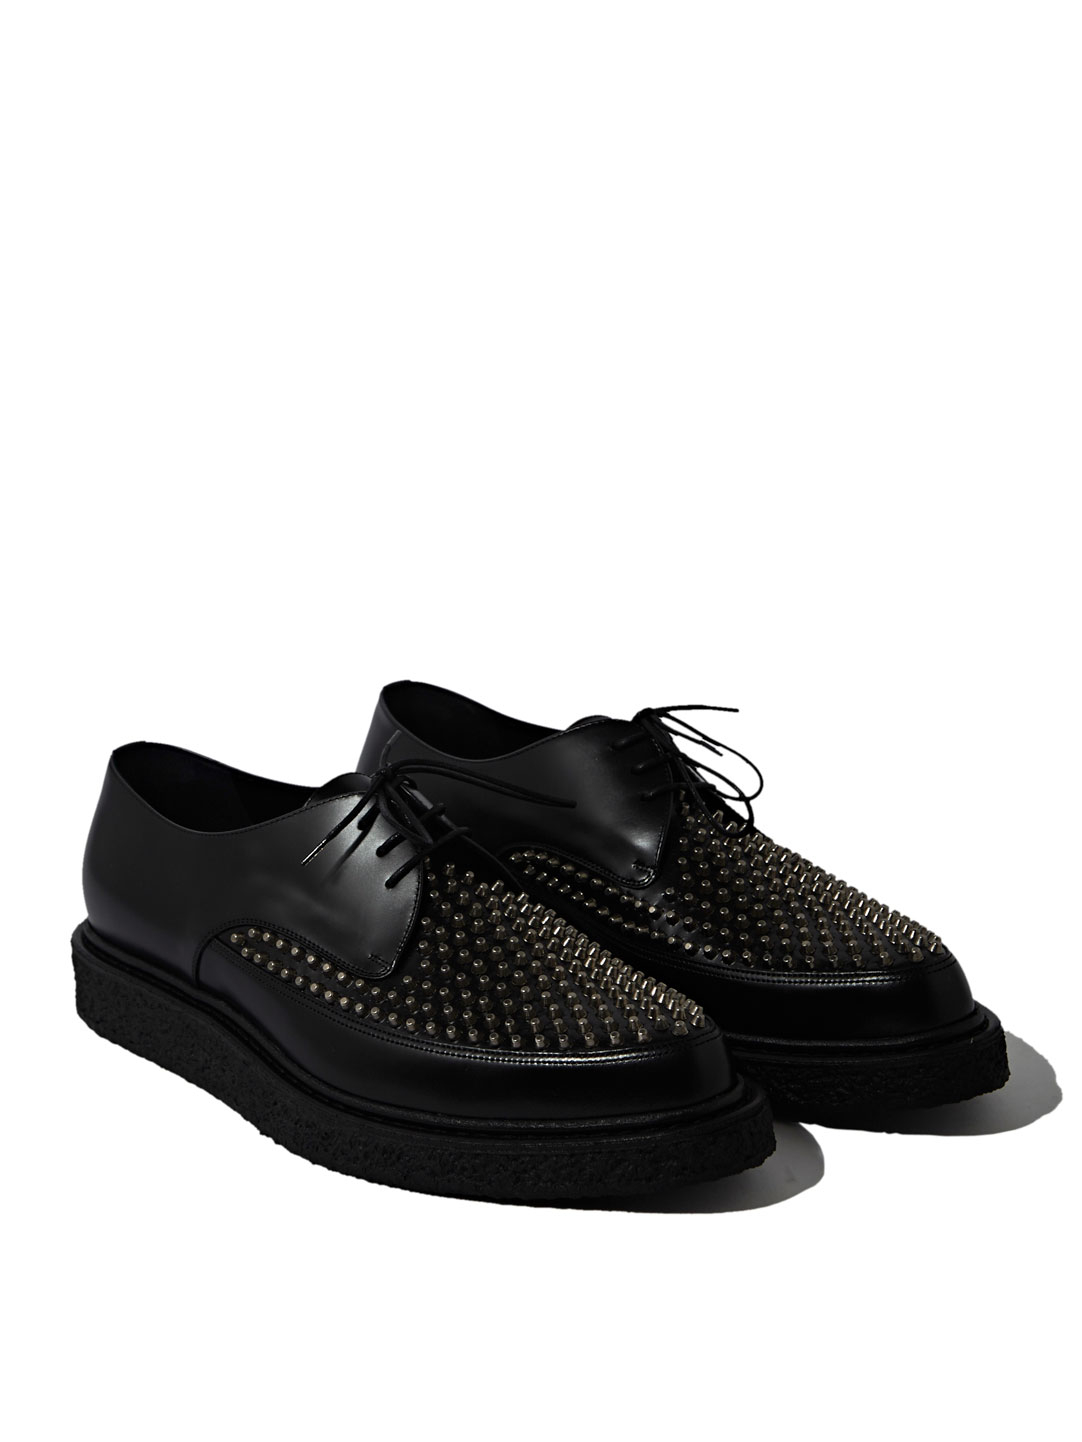 Black Studded Sneakers Shoes Mens